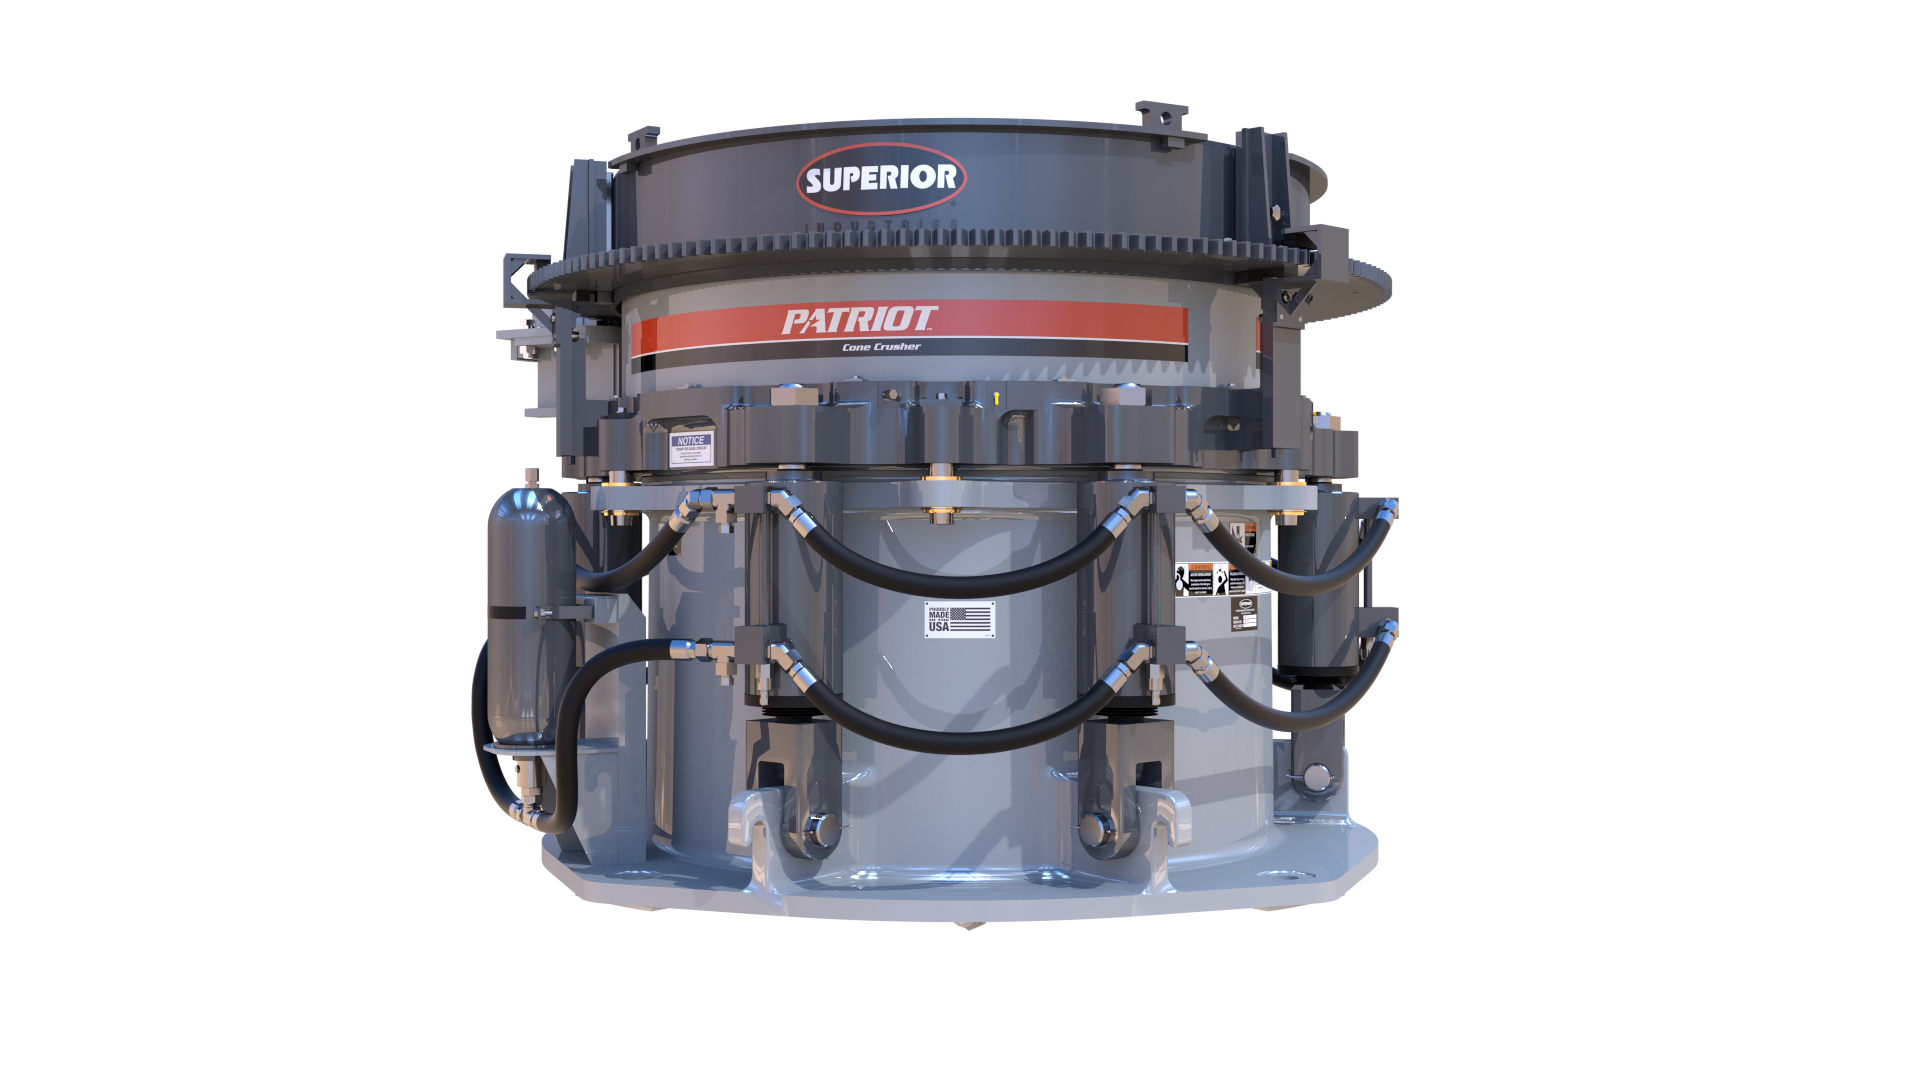 The Patriot Cone Crusher is a great example of U.S. made precision machining